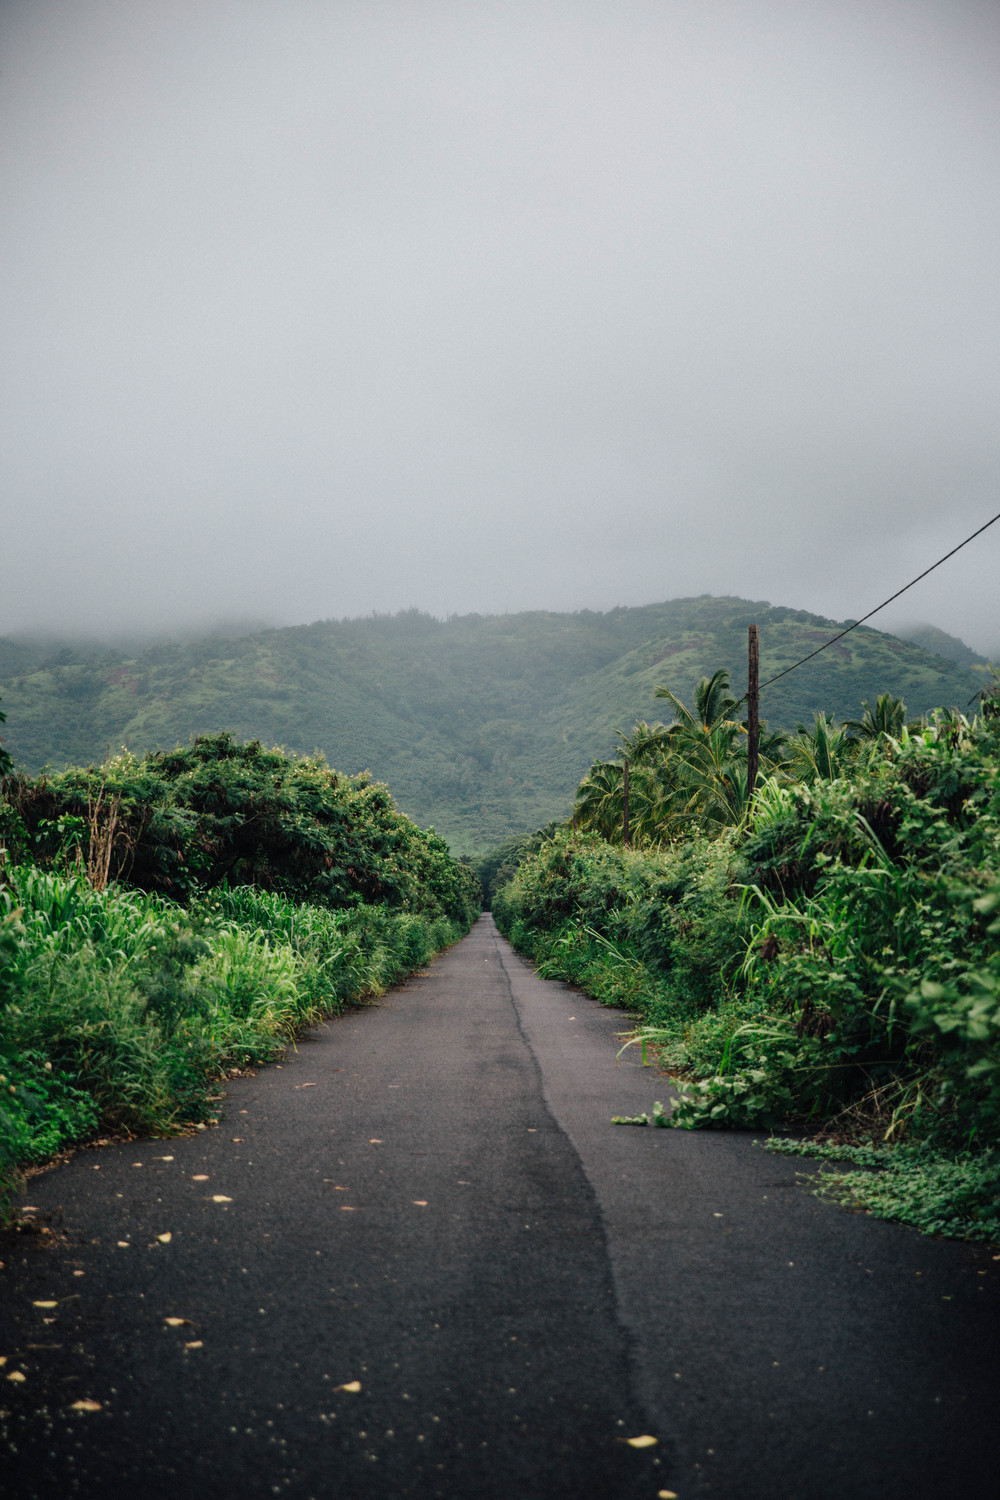 Road to somewhere, Hawaii